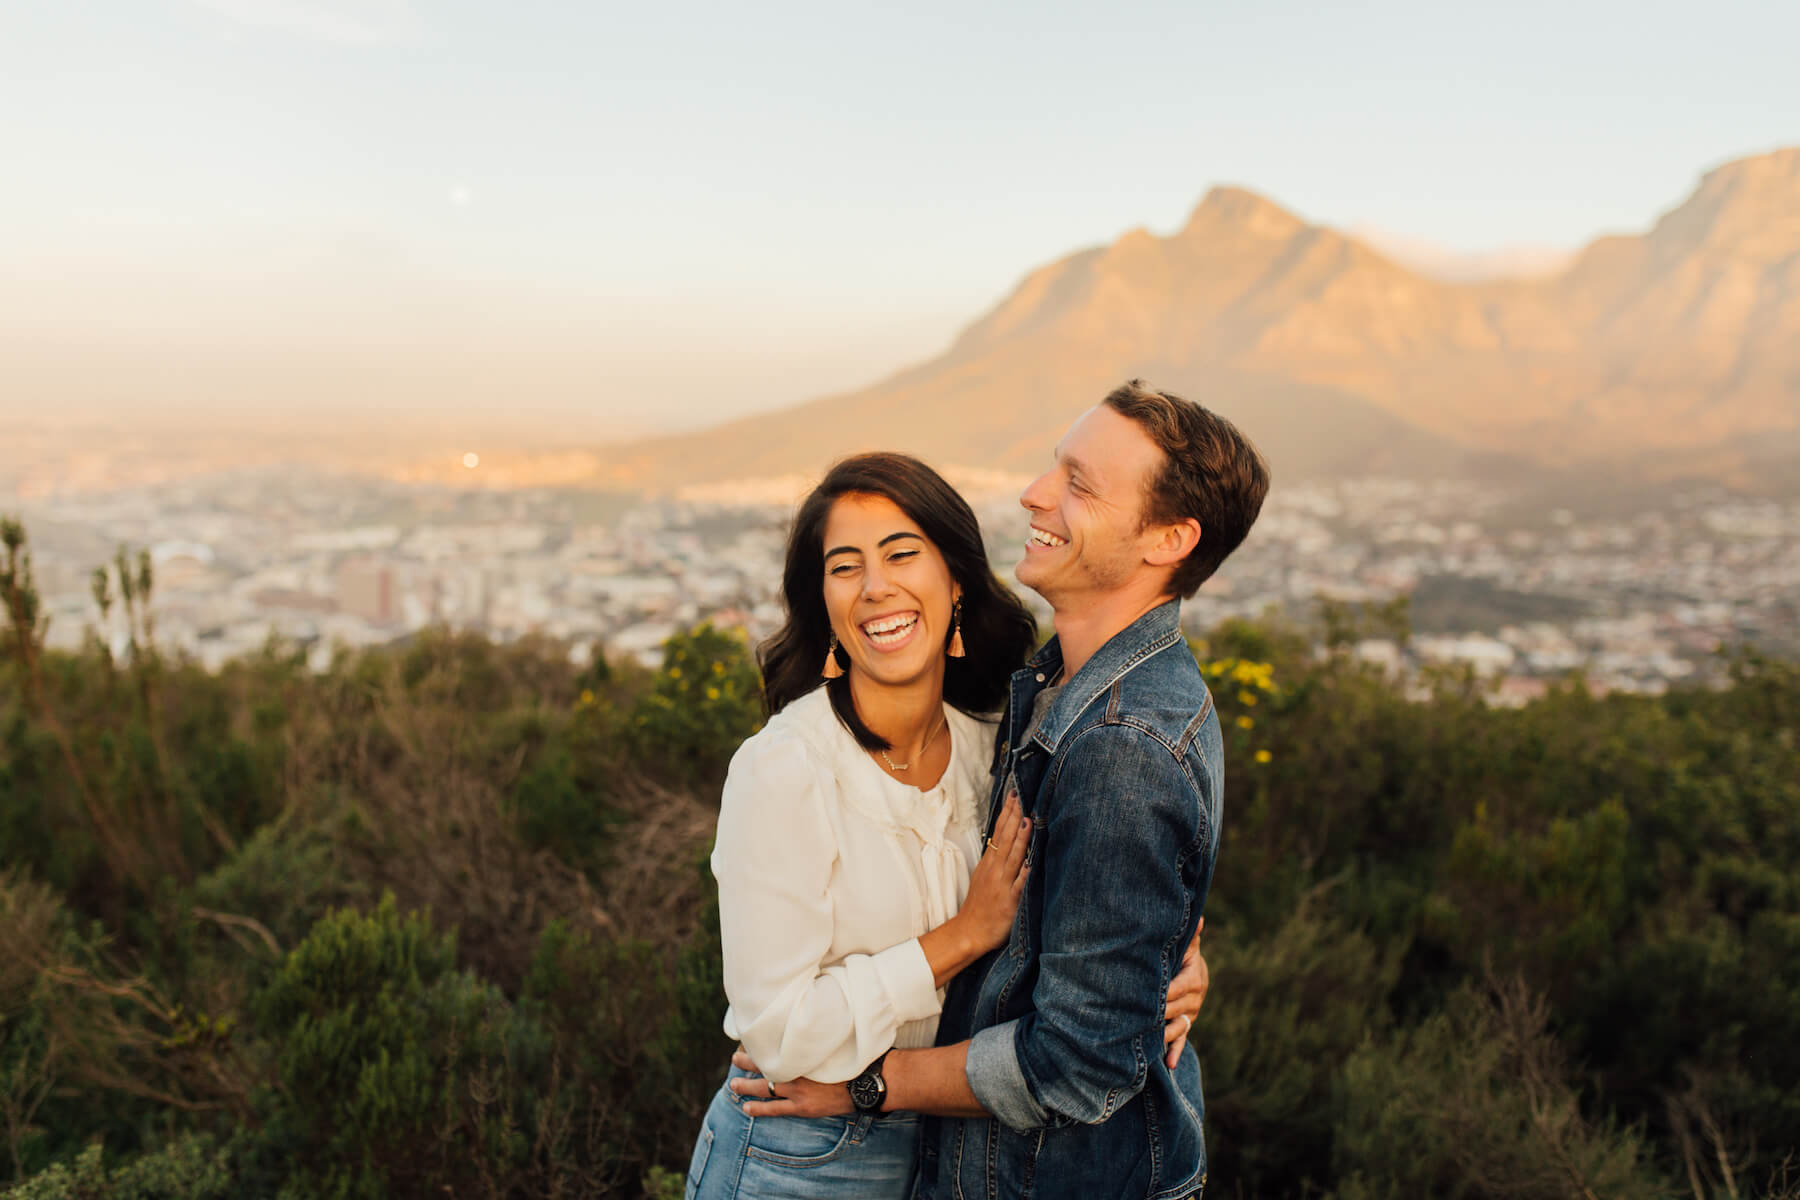 couple holding each other and laughing on a hill in Cape Town, South Africa